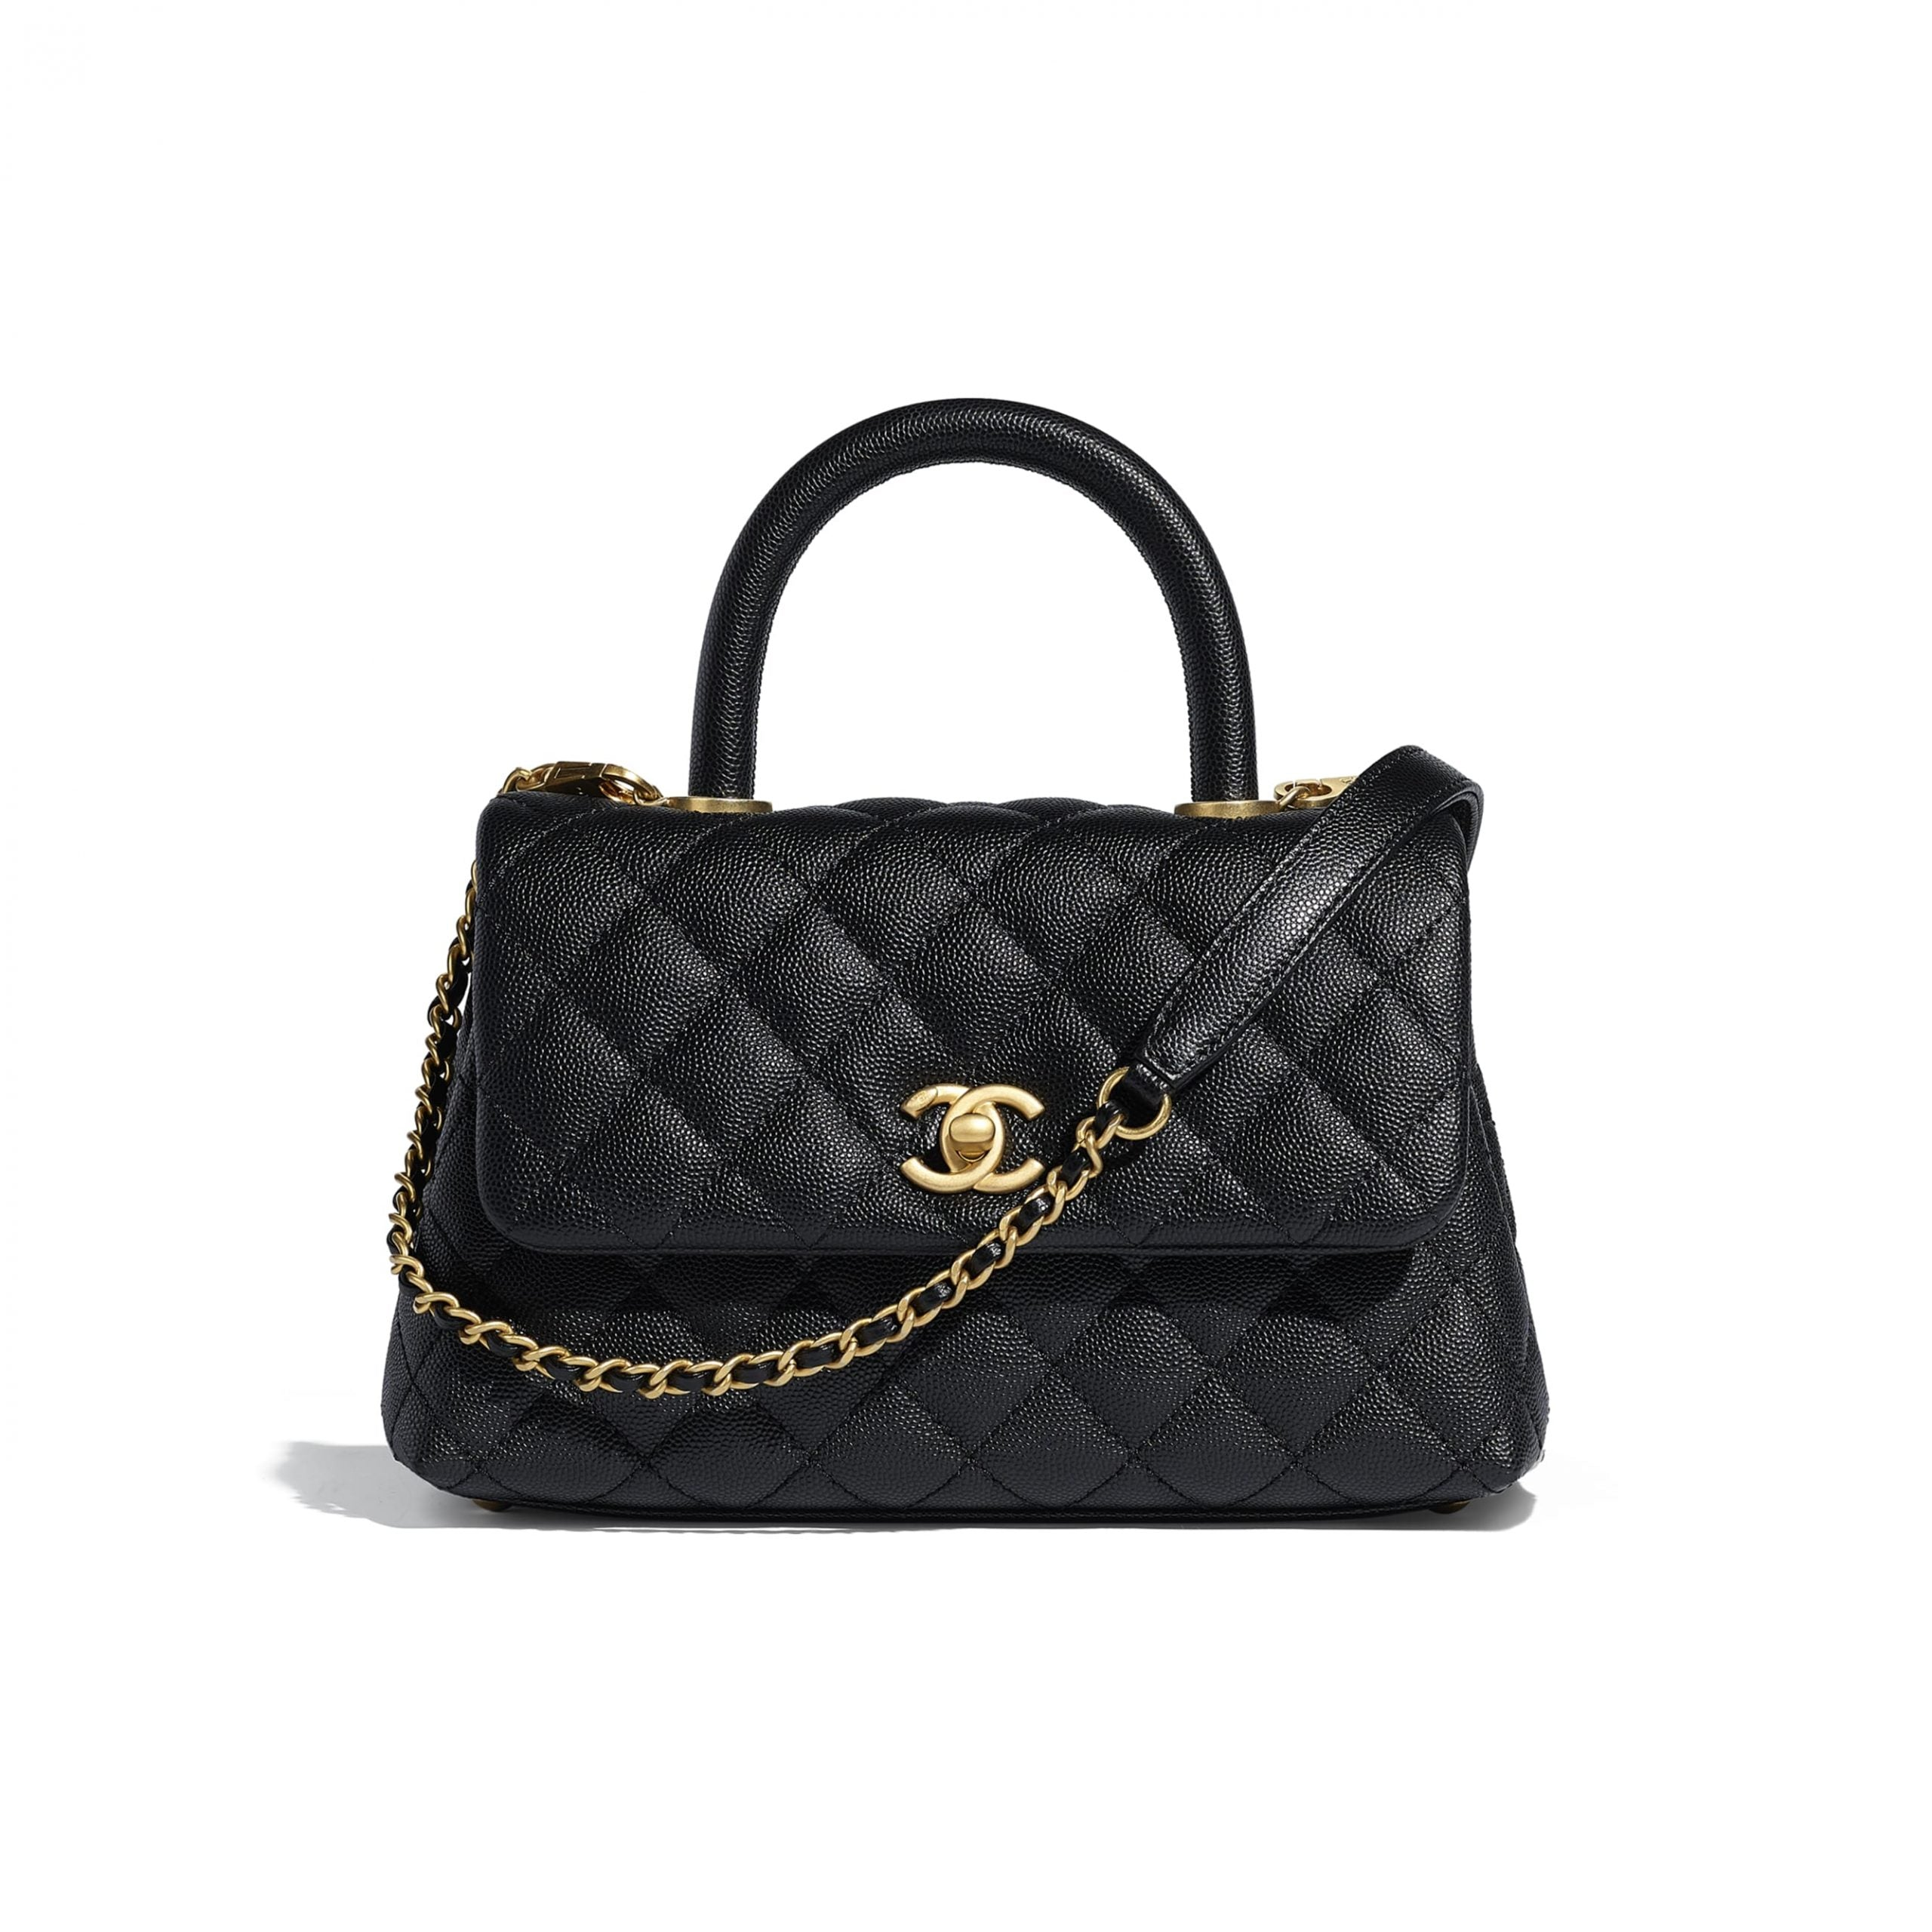 How Much Is Chanel Now After January 2021 Price Increase in the USA? Chanel Coco Handle